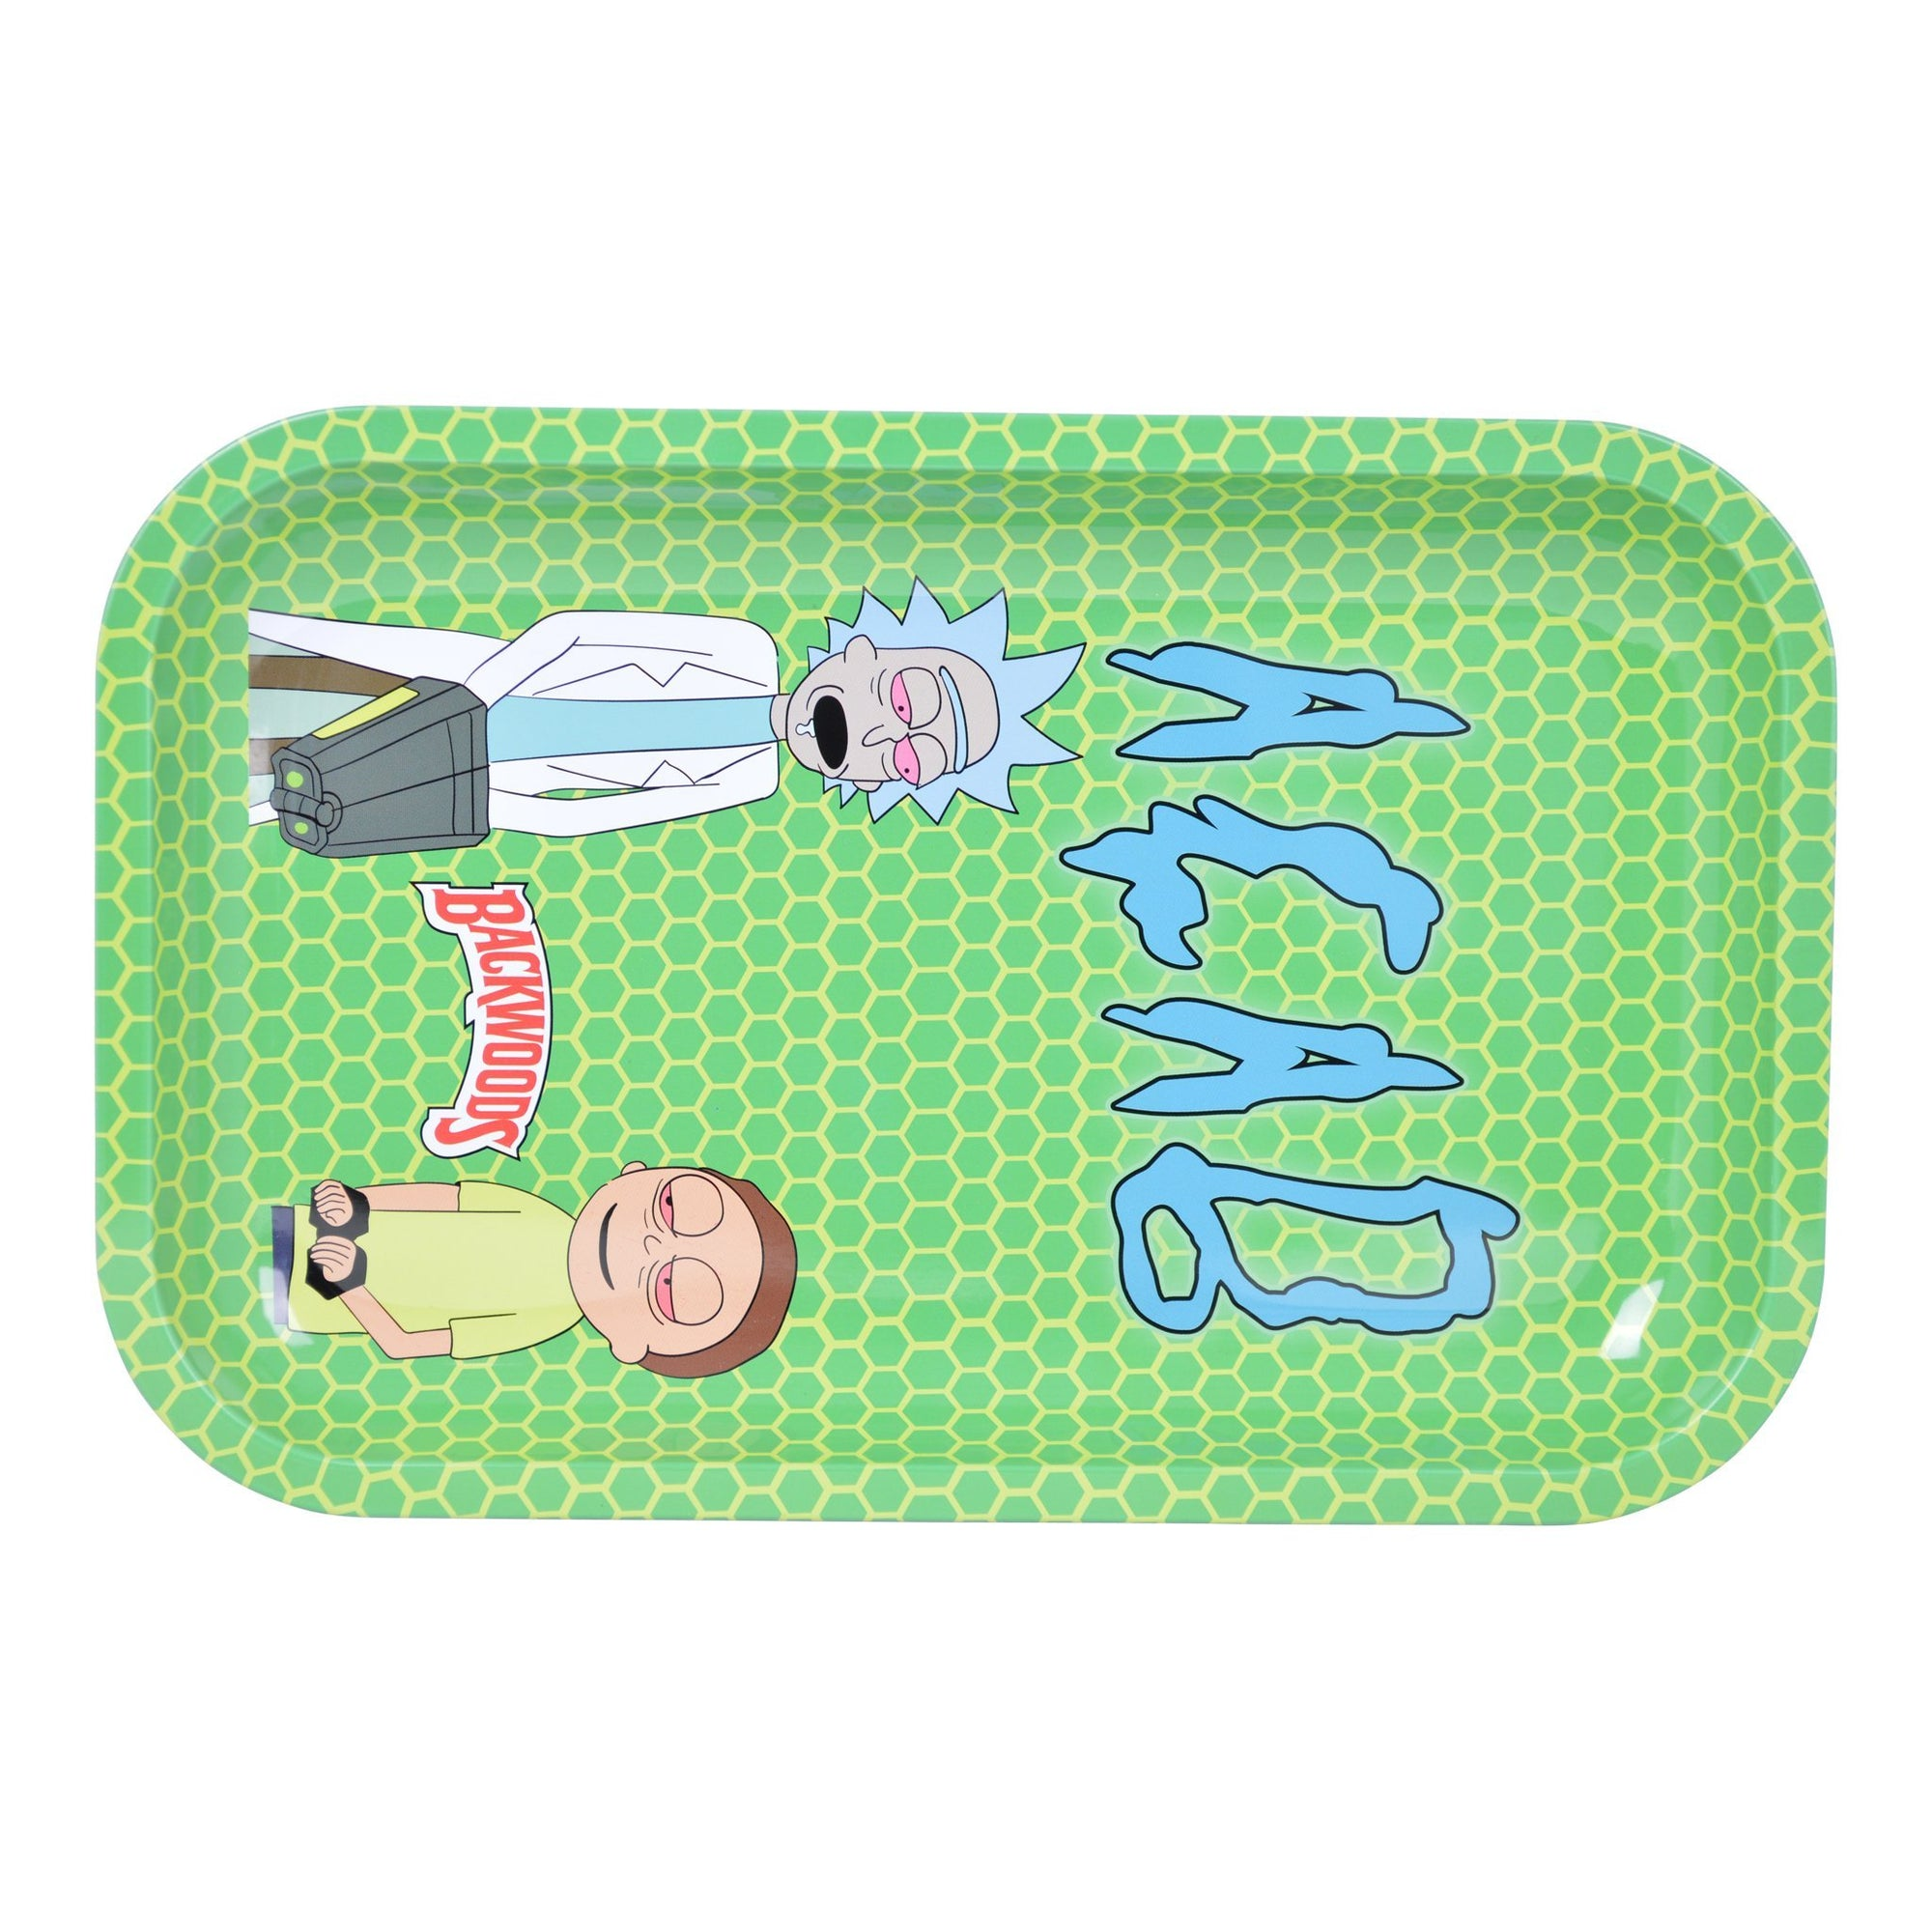 Full shot of 7.5 inch metal rolling tray with Rick and Morty getting high RnM design ACAB word in green background